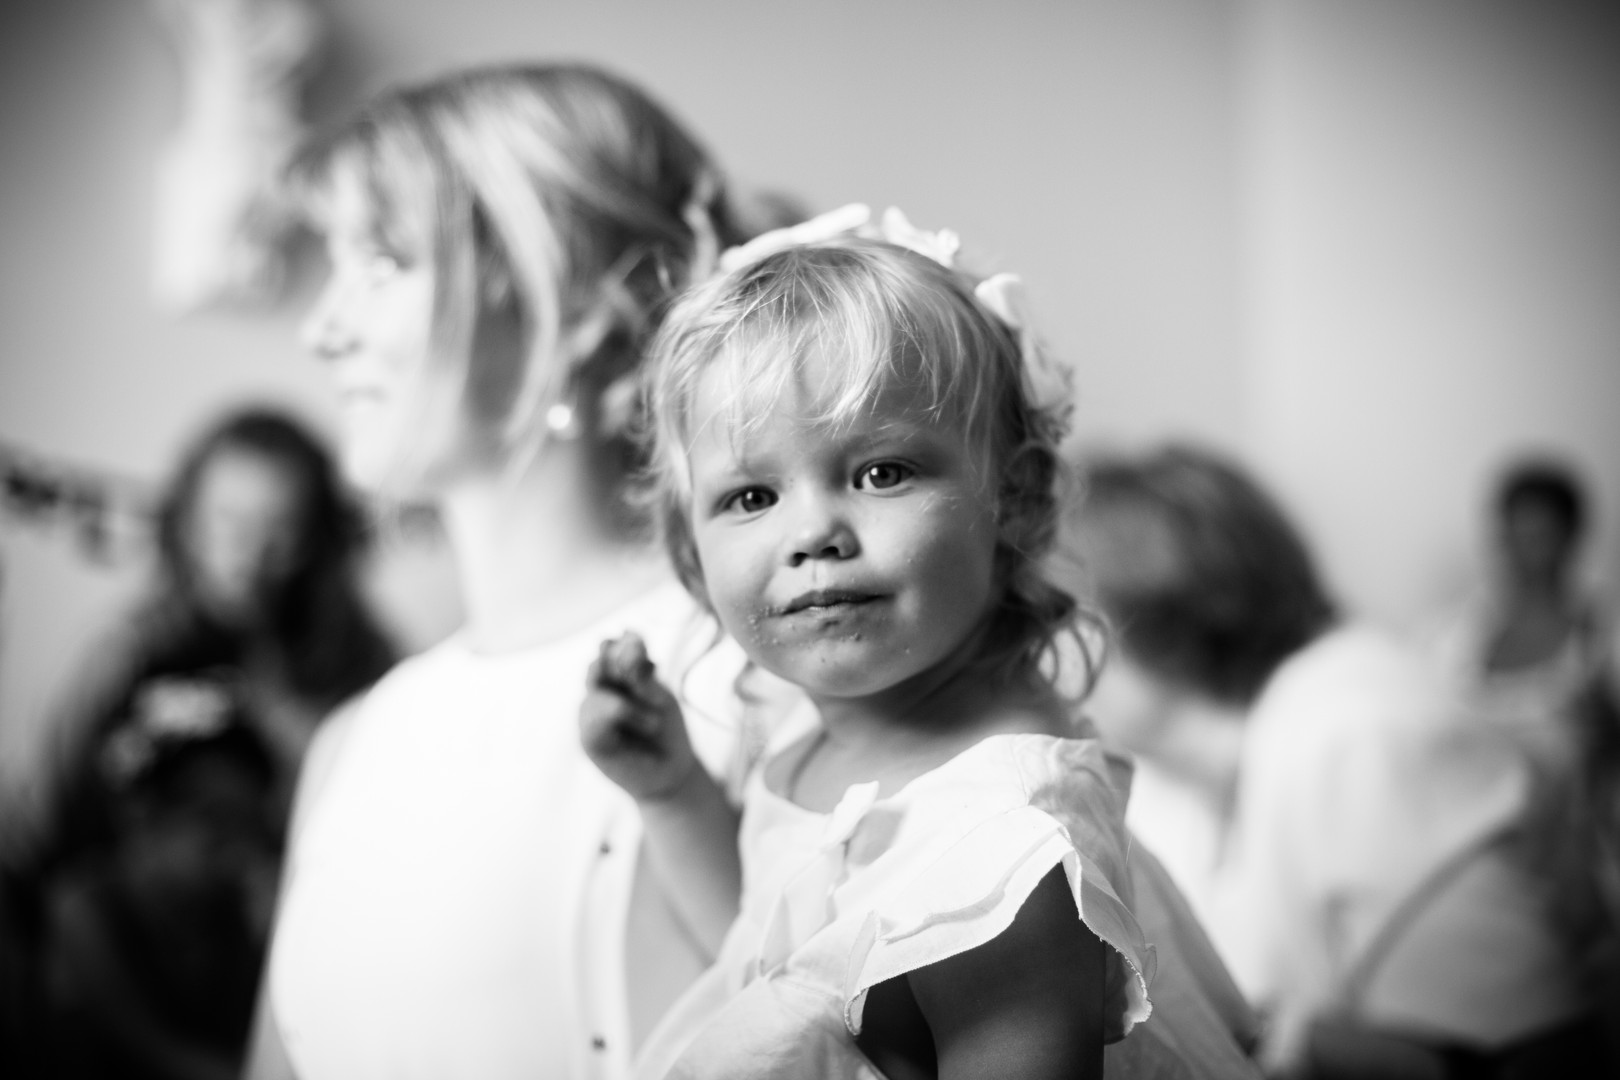 photography photographie baby girl portrait